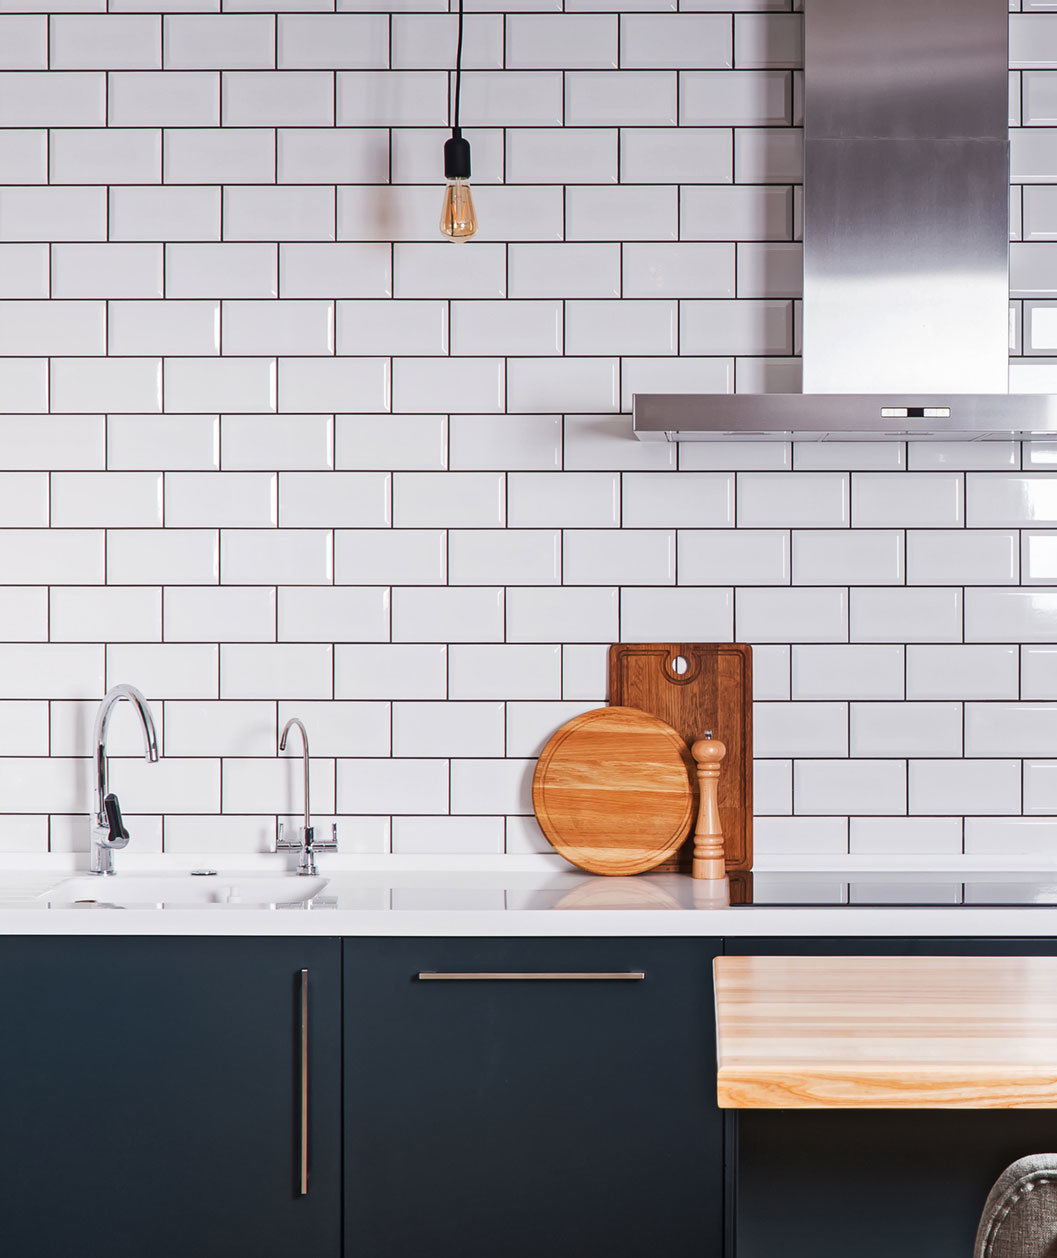 12 Kitchen Backsplash Ideas You Need to See Right Now